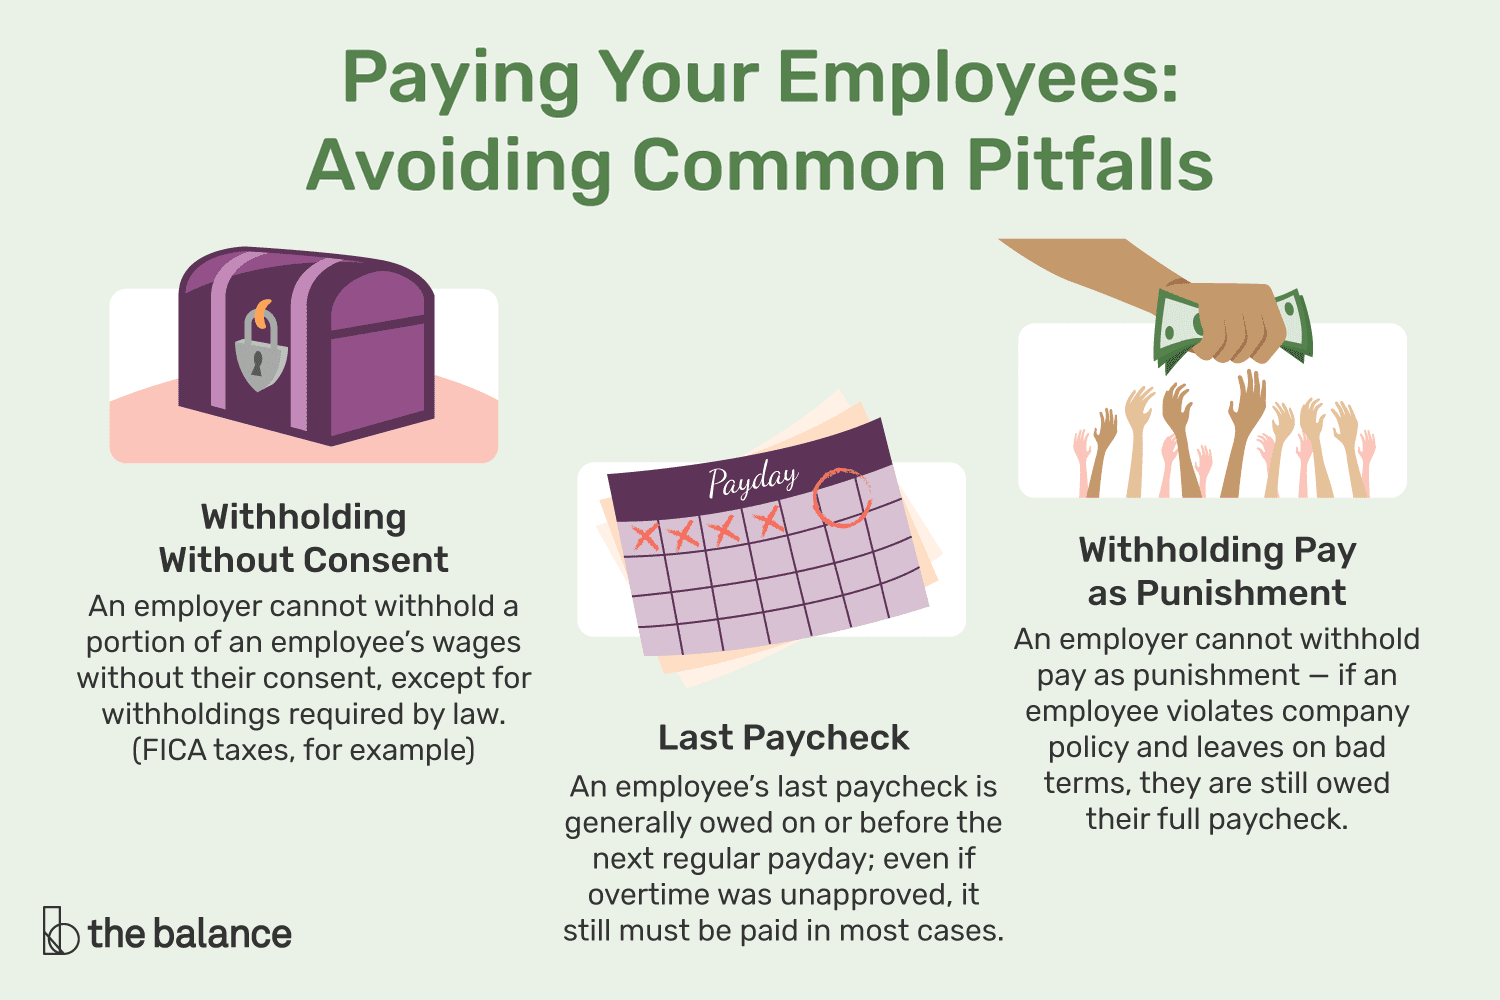 Legal Consequences of Not Paying Employees on Time